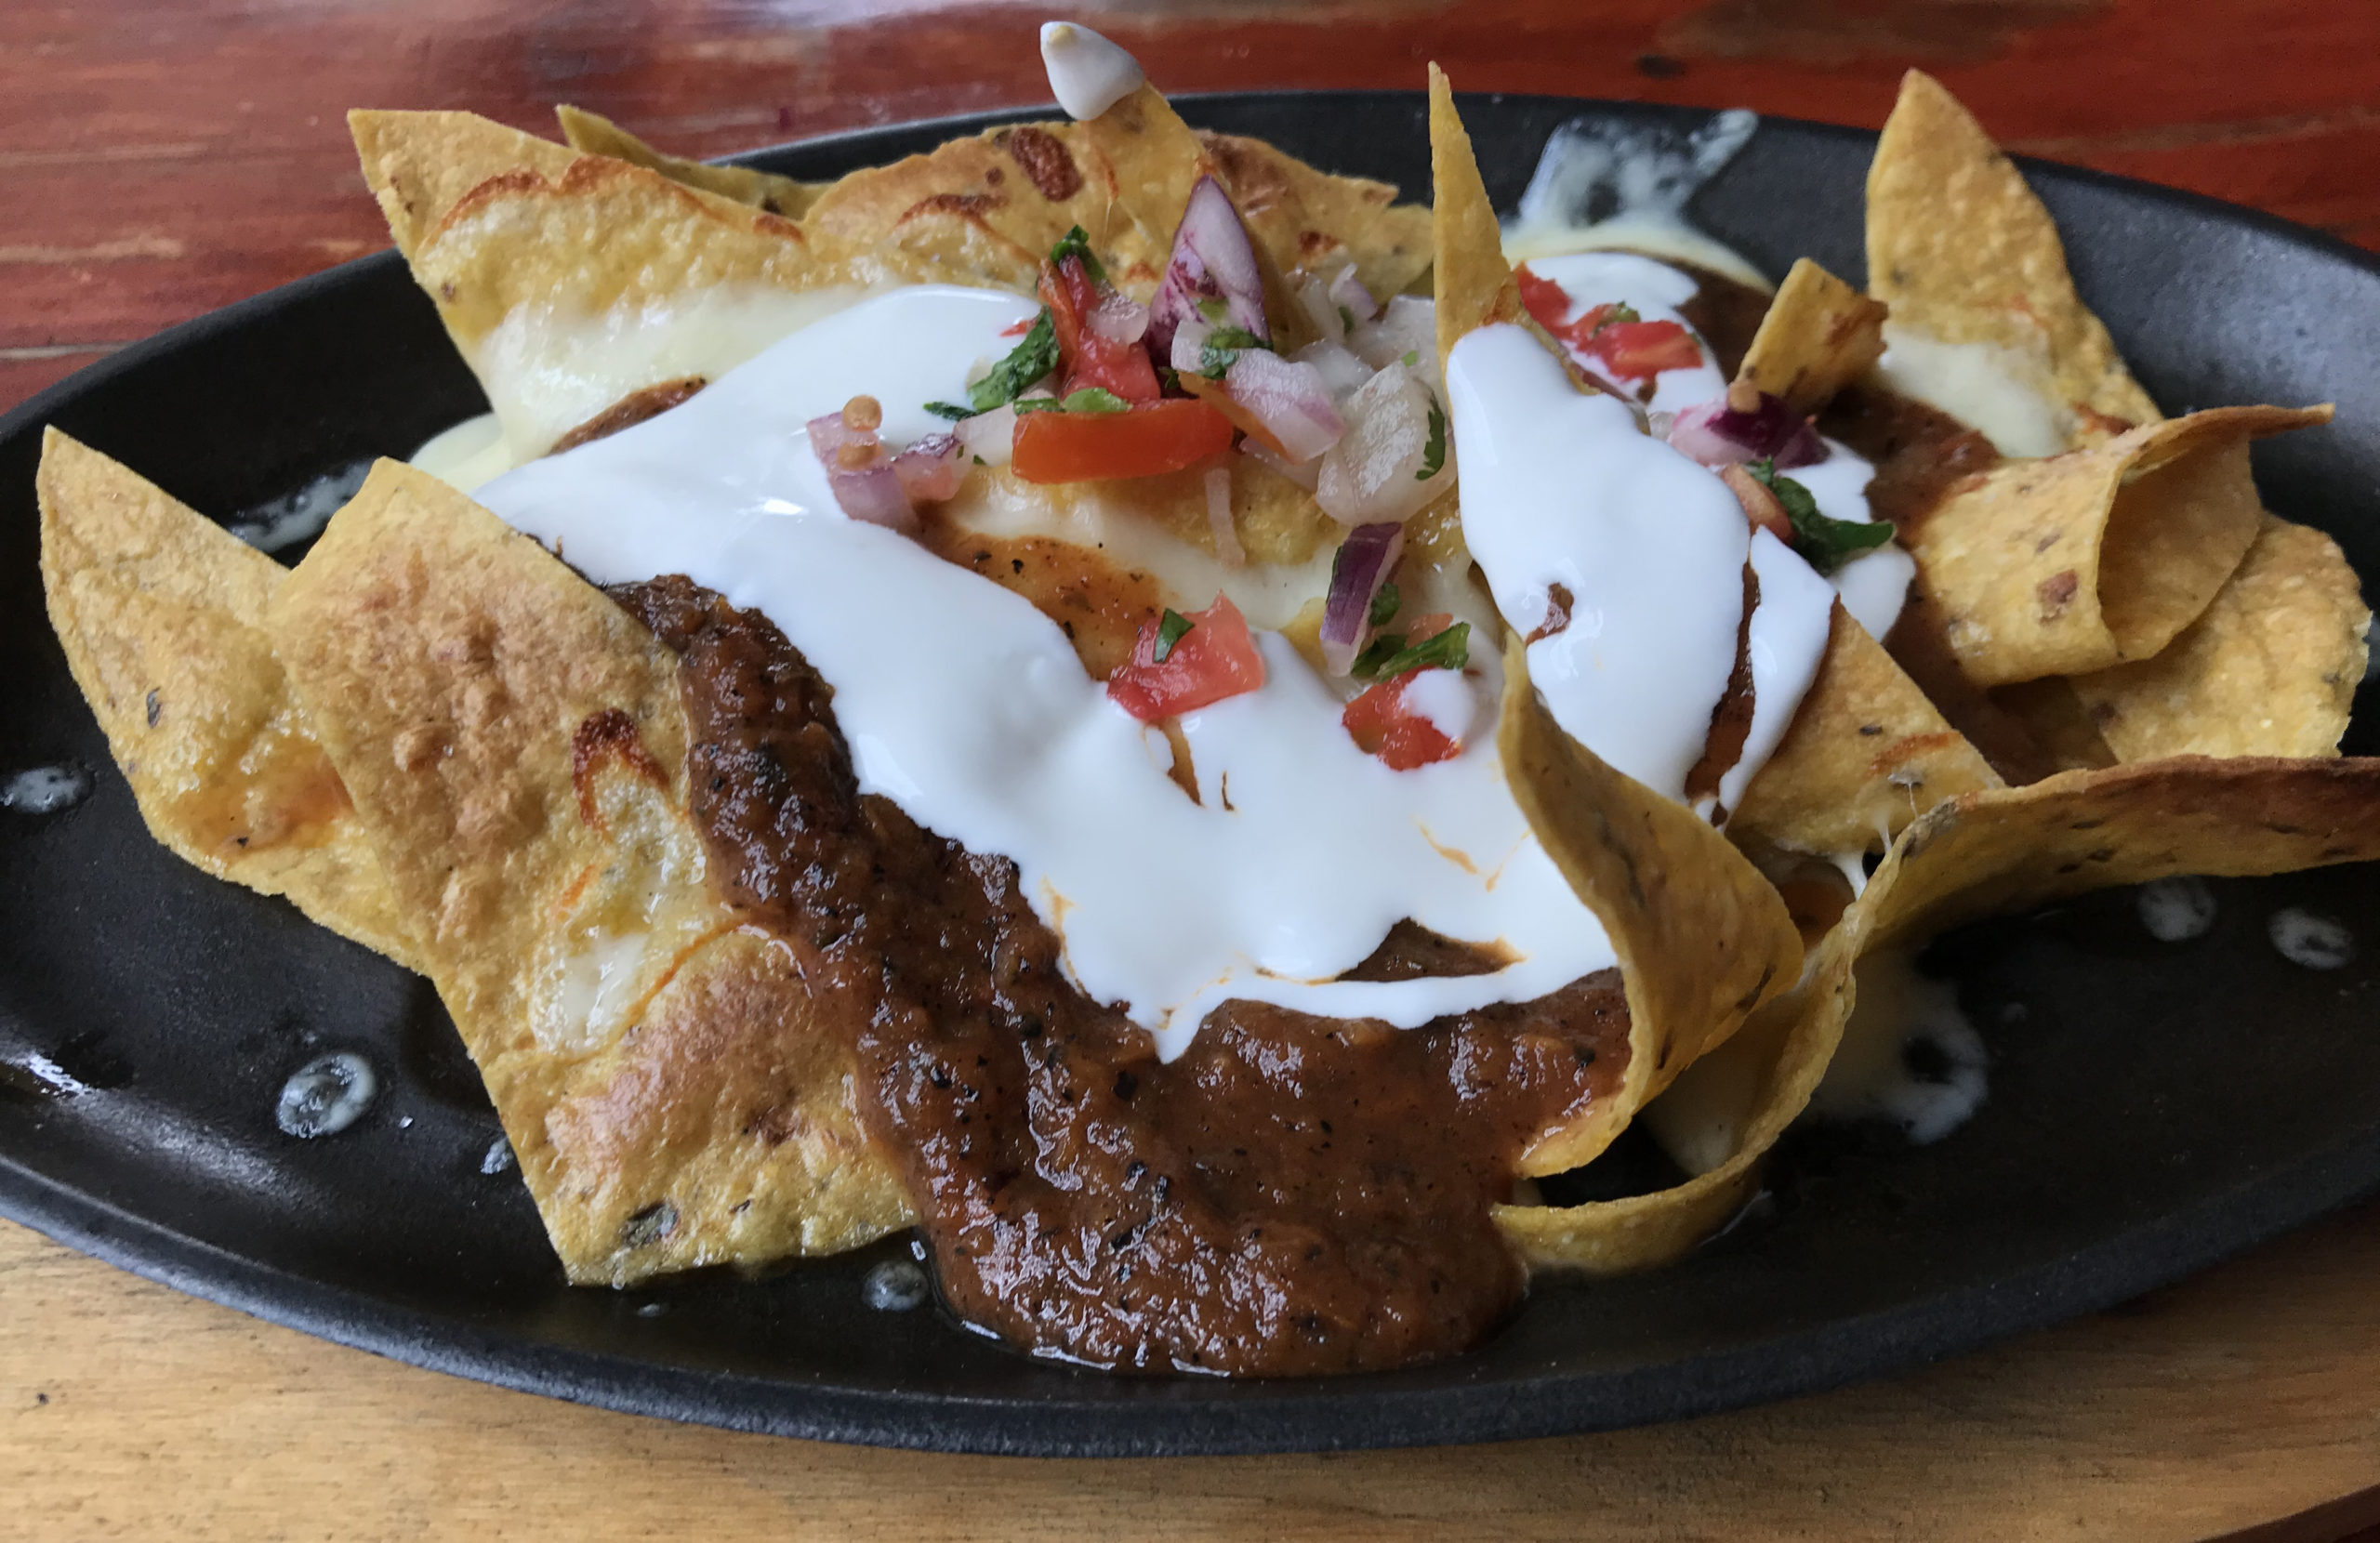 JOZI-MEX: It's all about the tortilla